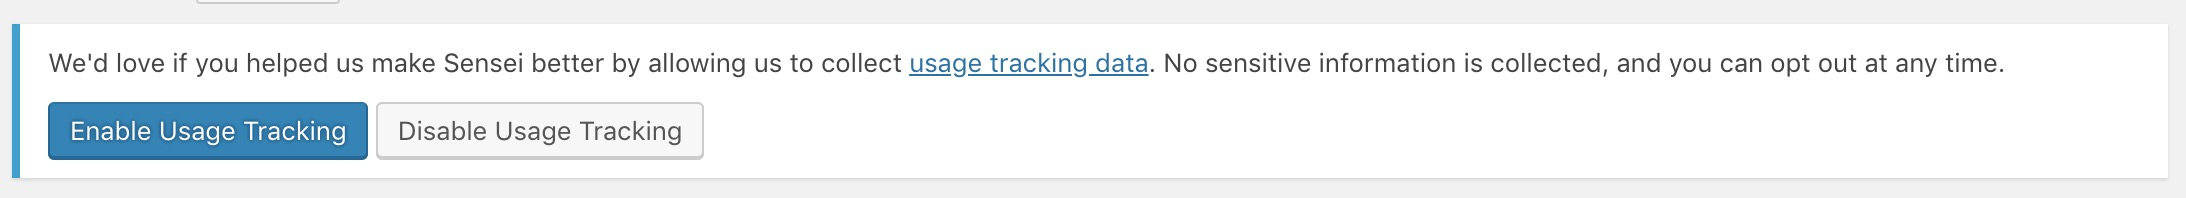 Enable usage tracking